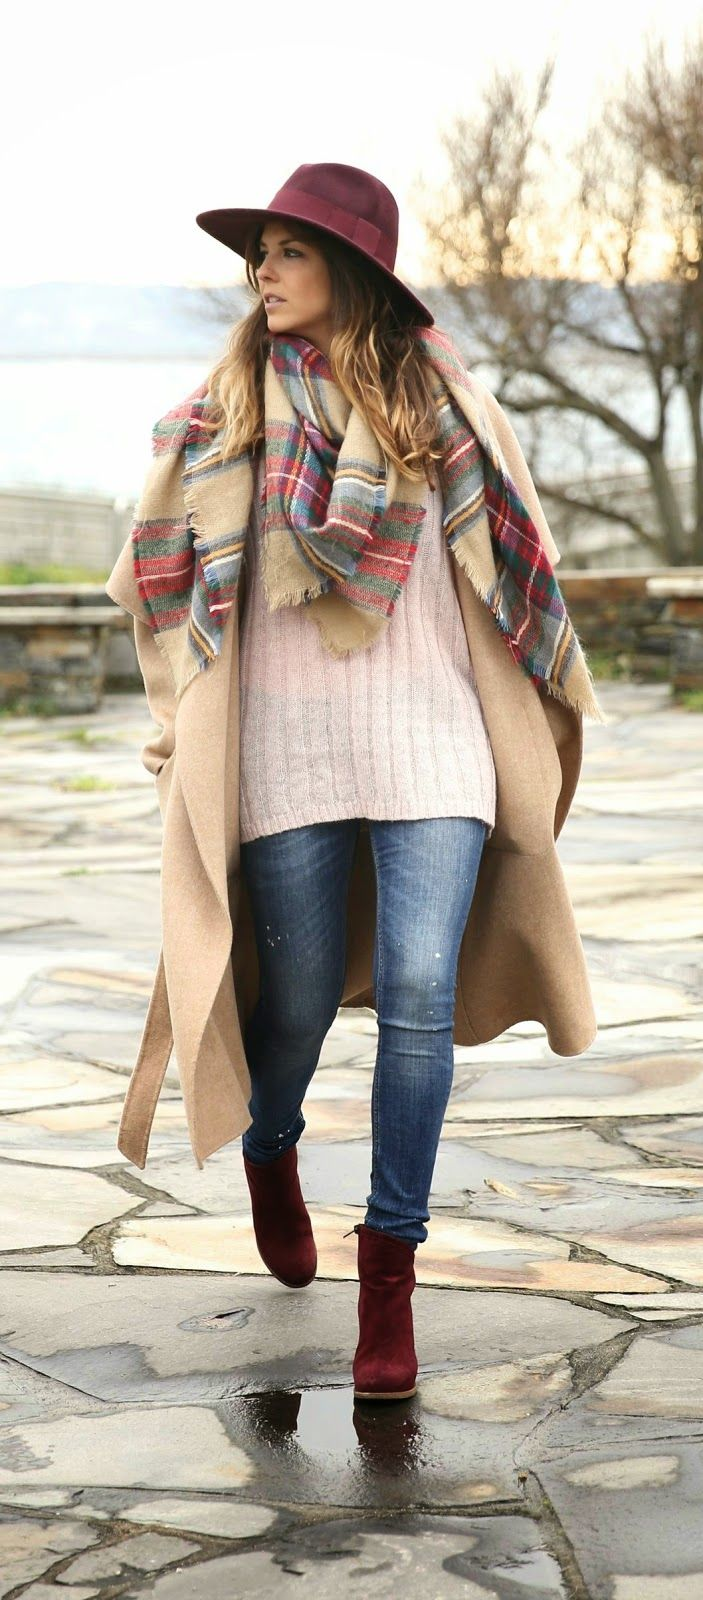 Go bold in oversized layers this winter. Keep your look balanced with skinny jeans and booties with a stacked heel.